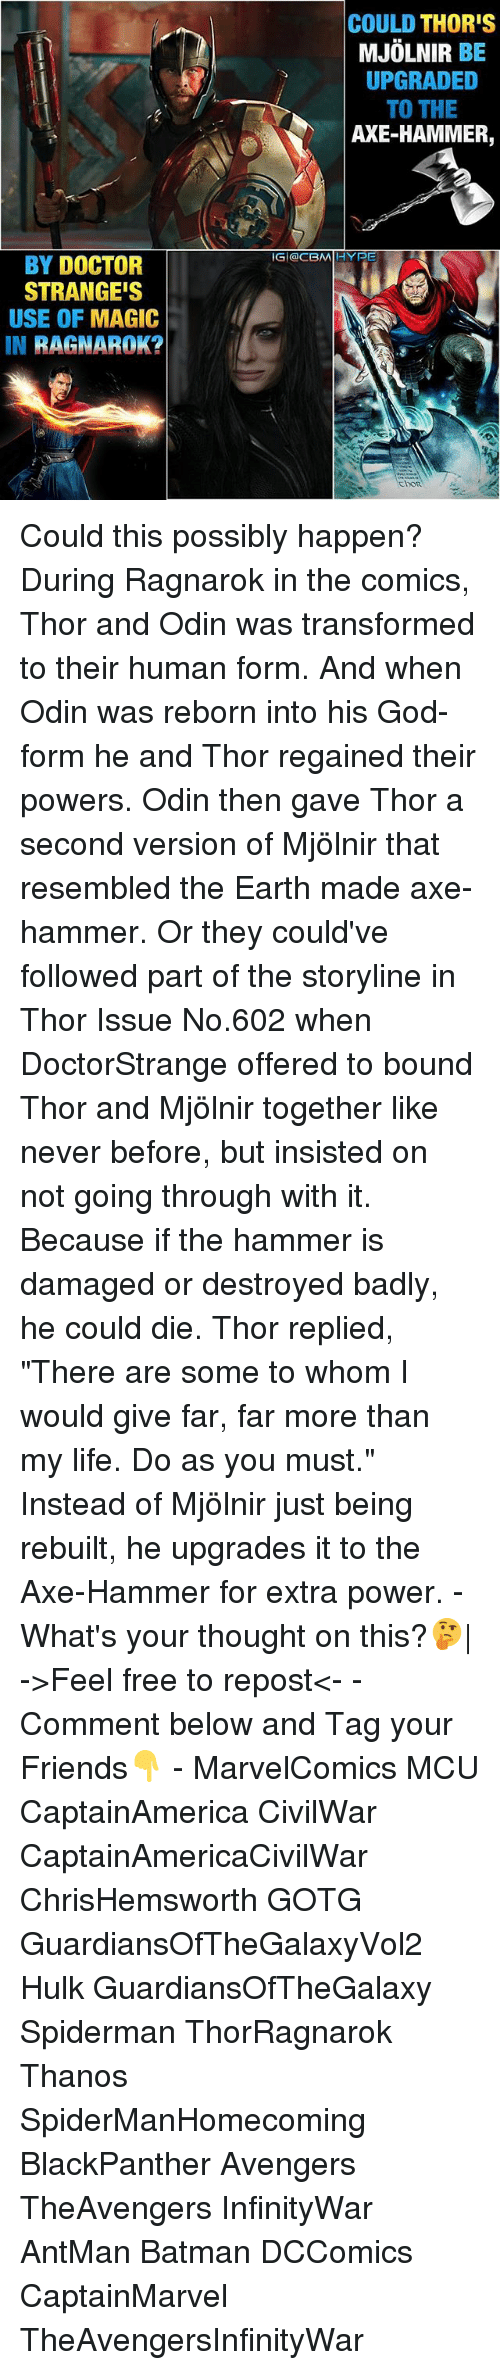 """To Whom: BY DOCTOR  STRANGE'S  USE OF MAGIC  IN  RAGNAROK?  COULD THOR'S  MJOLNIR  BE  UPGRADED  TO THE  AXE-HAMMER,  IGI OCBMIIIHYPE Could this possibly happen? During Ragnarok in the comics, Thor and Odin was transformed to their human form. And when Odin was reborn into his God-form he and Thor regained their powers. Odin then gave Thor a second version of Mjölnir that resembled the Earth made axe-hammer. Or they could've followed part of the storyline in Thor Issue No.602 when DoctorStrange offered to bound Thor and Mjölnir together like never before, but insisted on not going through with it. Because if the hammer is damaged or destroyed badly, he could die. Thor replied, """"There are some to whom I would give far, far more than my life. Do as you must."""" Instead of Mjölnir just being rebuilt, he upgrades it to the Axe-Hammer for extra power. - What's your thought on this?🤔